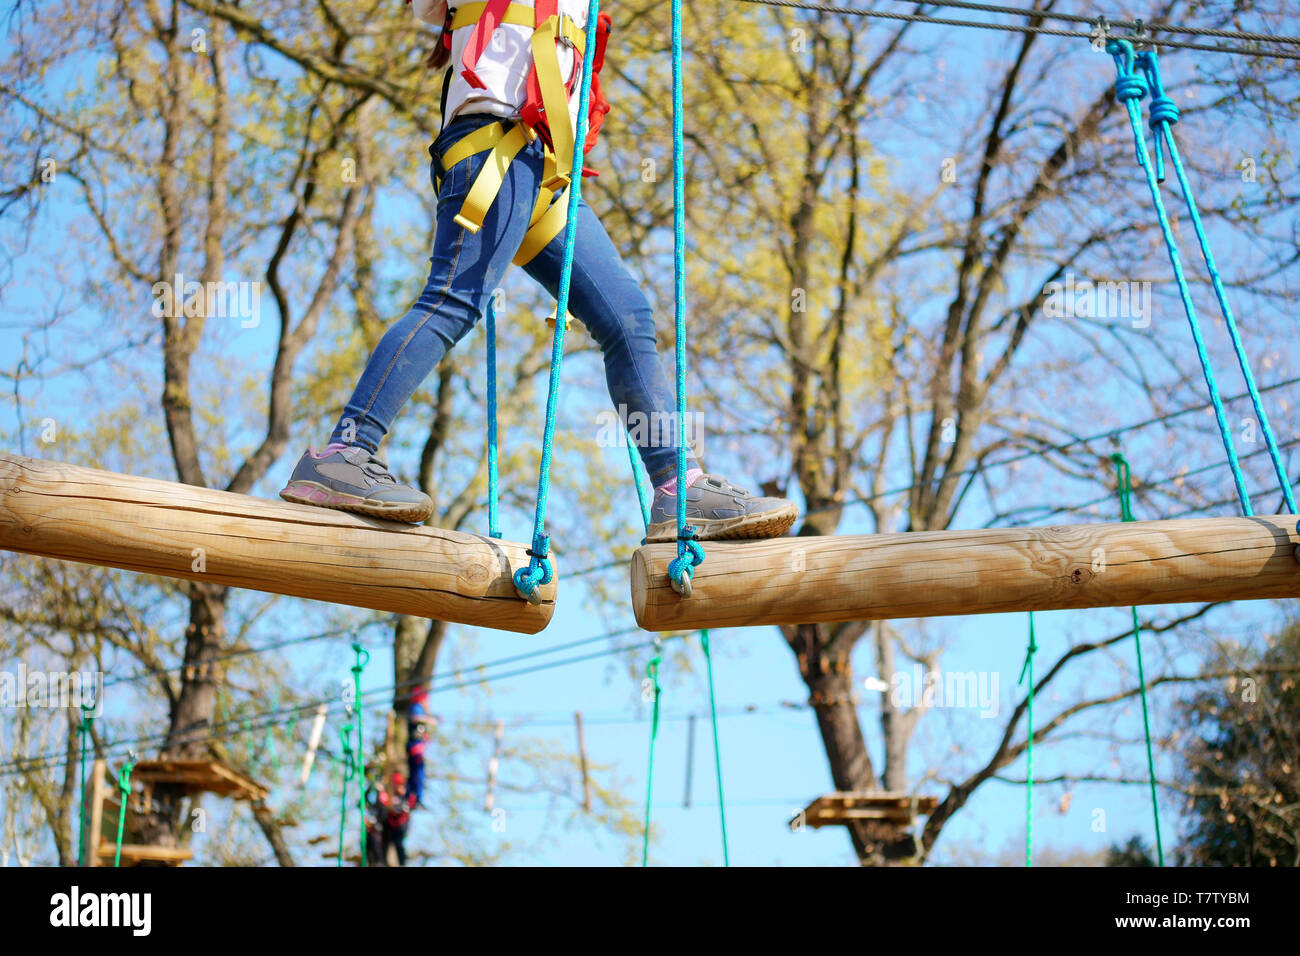 Closeup Little girl playing at adventure park climbing and addressing balance challenges for self esteem - Stock Image